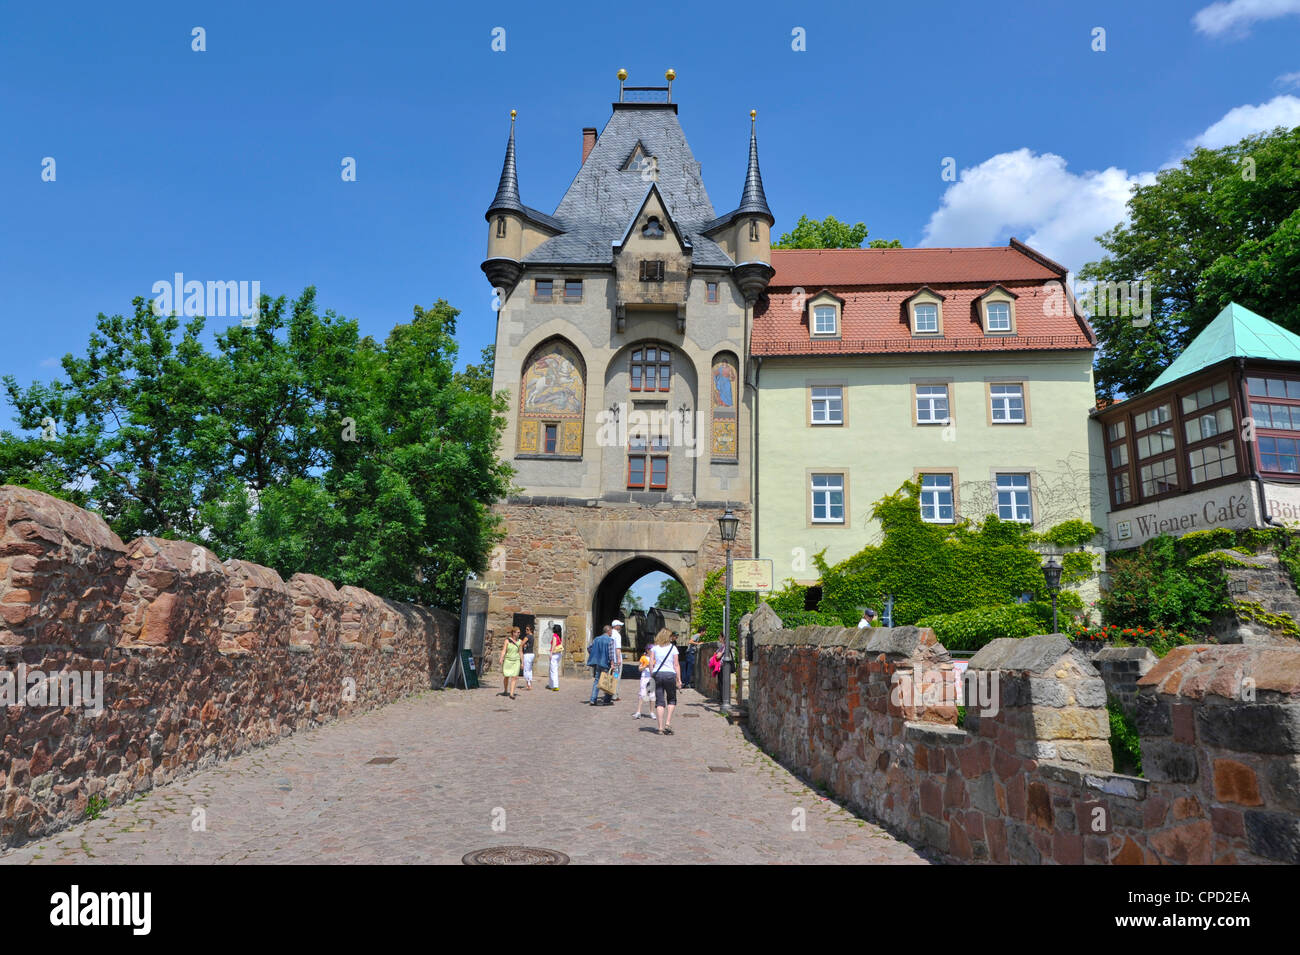 Old town of Meissen, Saxony, Germany, Europe - Stock Image